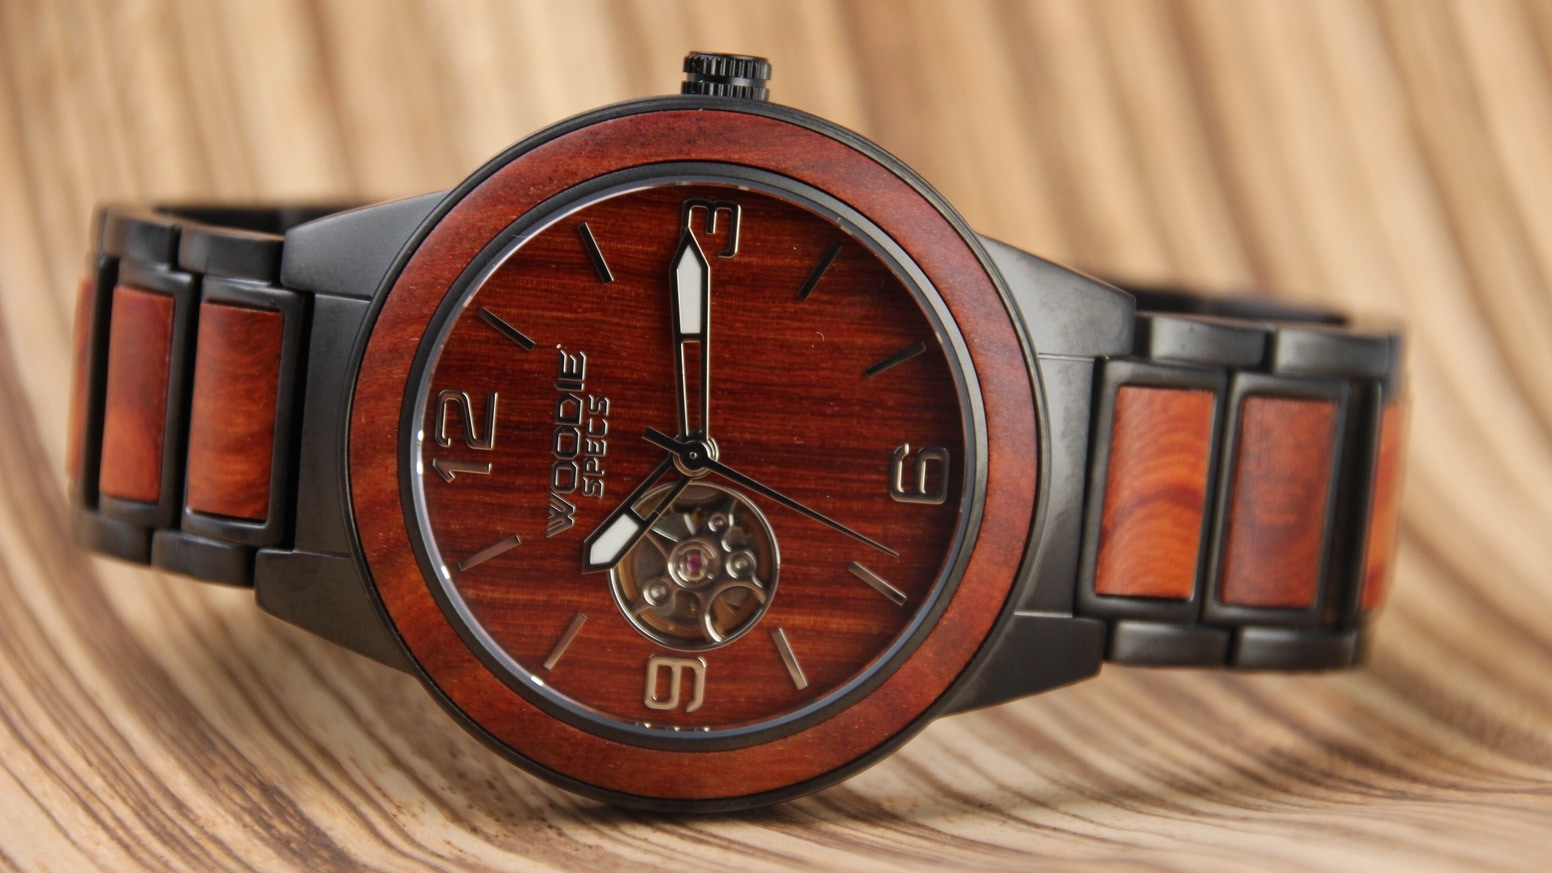 Handcrafted wood watch features stainless steel, sapphire glass, and high-quality automatic movement that requires no battery.